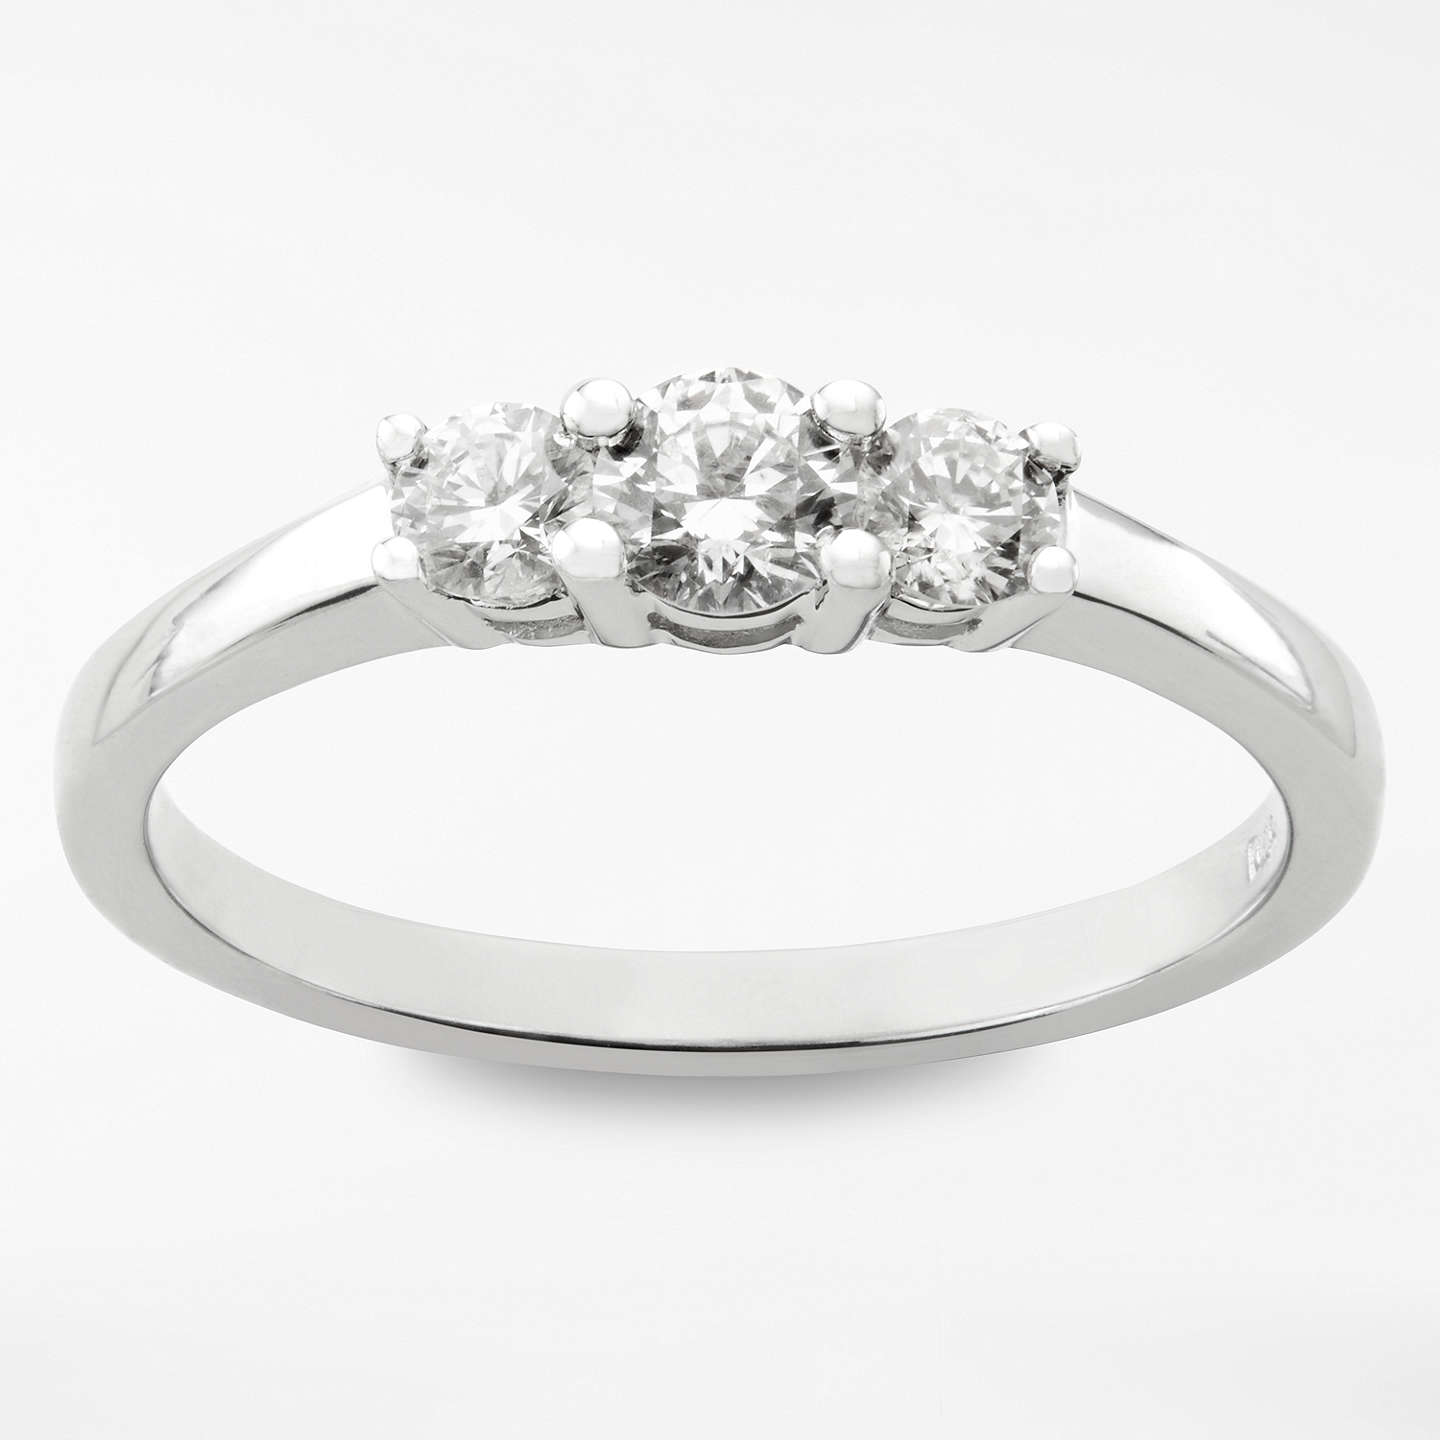 lugaro rings diamond bridal ring engagement trilogy square crl jewellery ideal